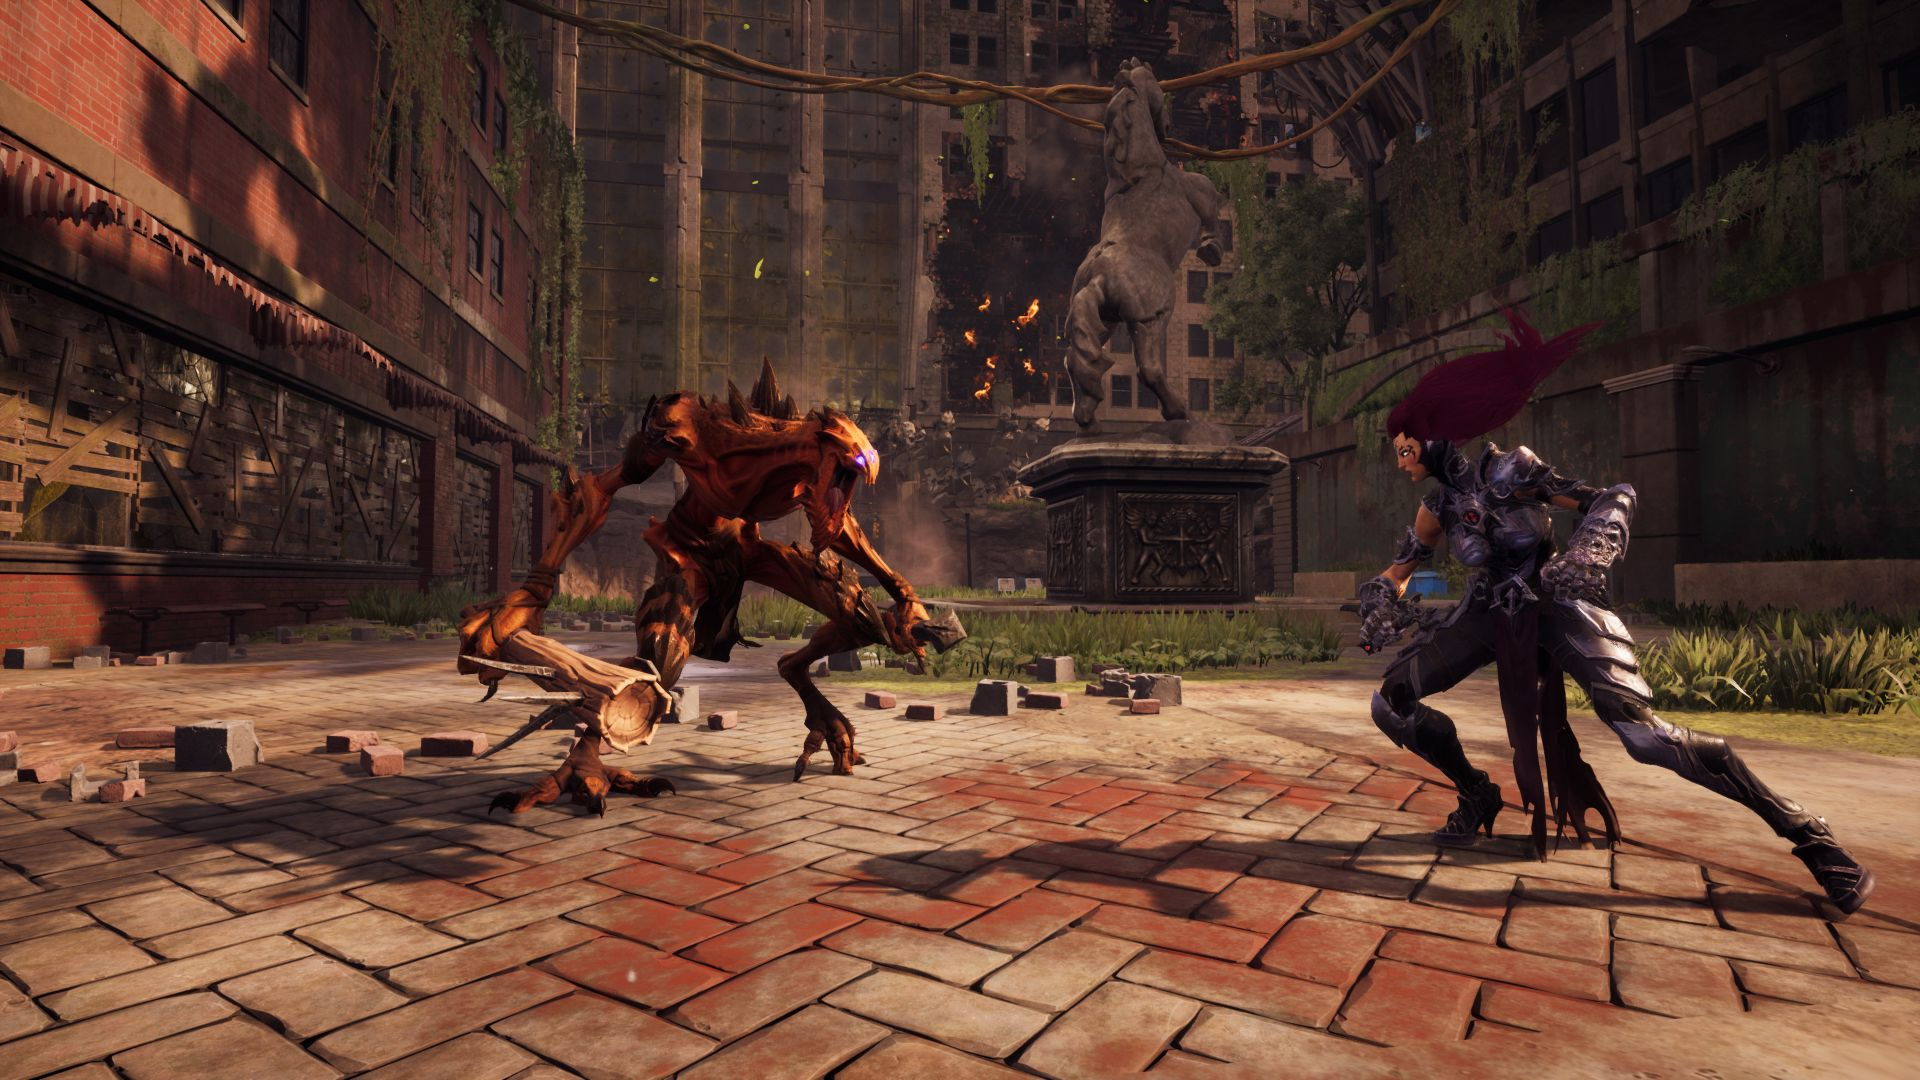 Darksiders III, Gamescom 2018, screenshot, 4K (horizontal)